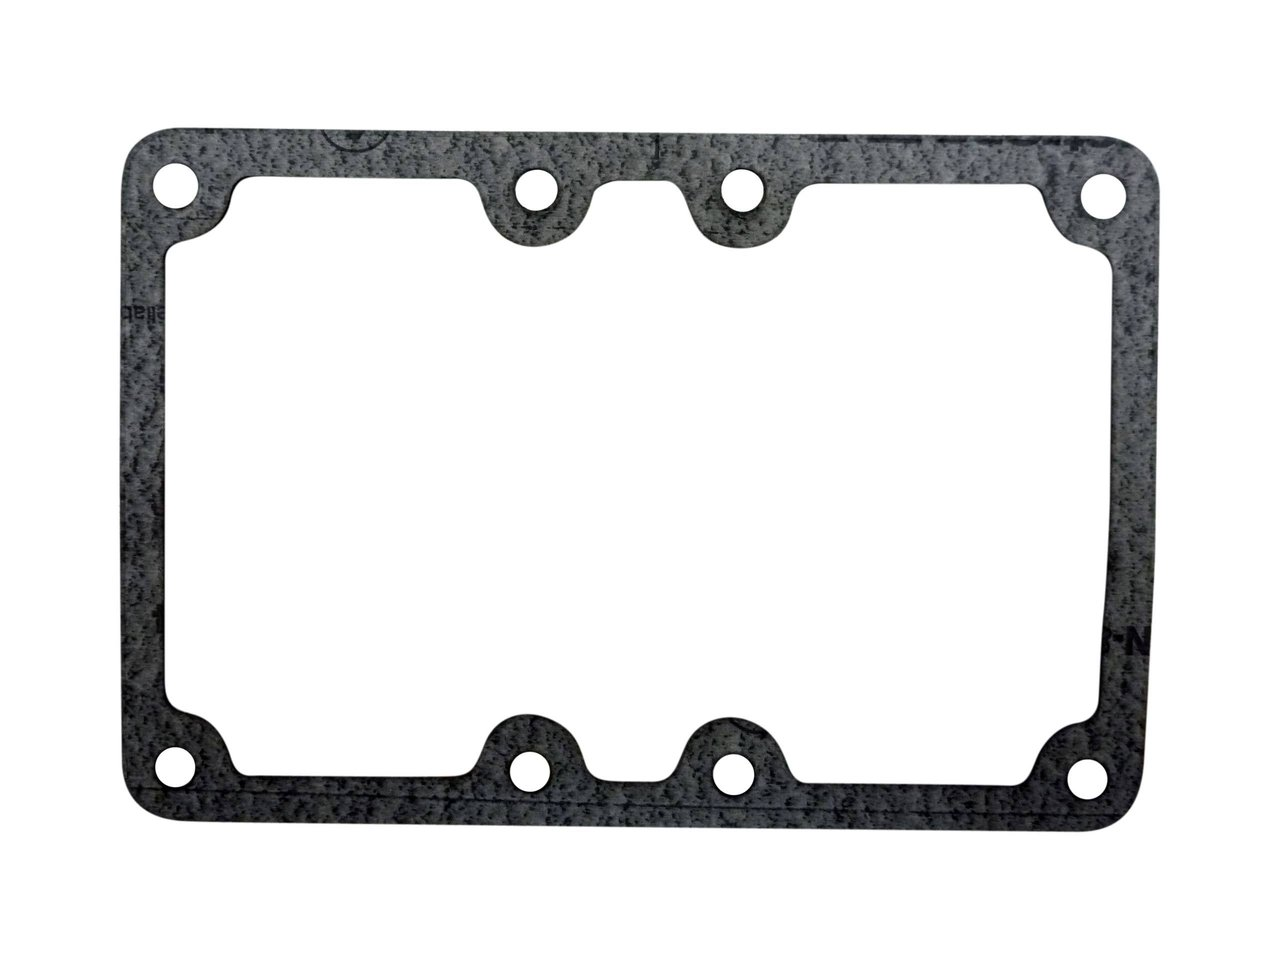 Gearbox Top Cover Gasket For Series 3 Stage 1 110 County